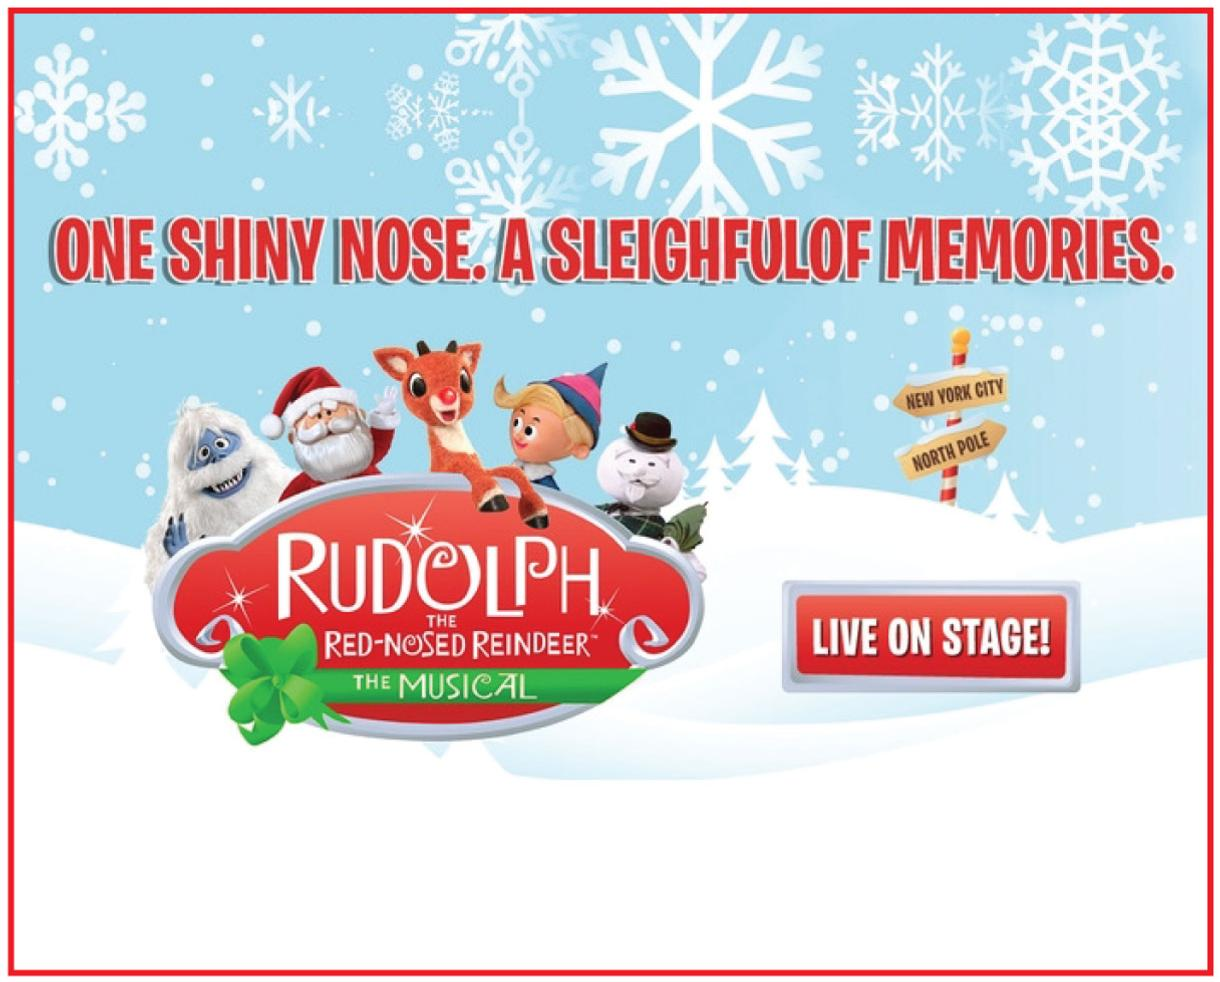 Deal Up To 20 Off Tickets To Rudolph The Red Nosed Reindeer The Musical At The Chicago